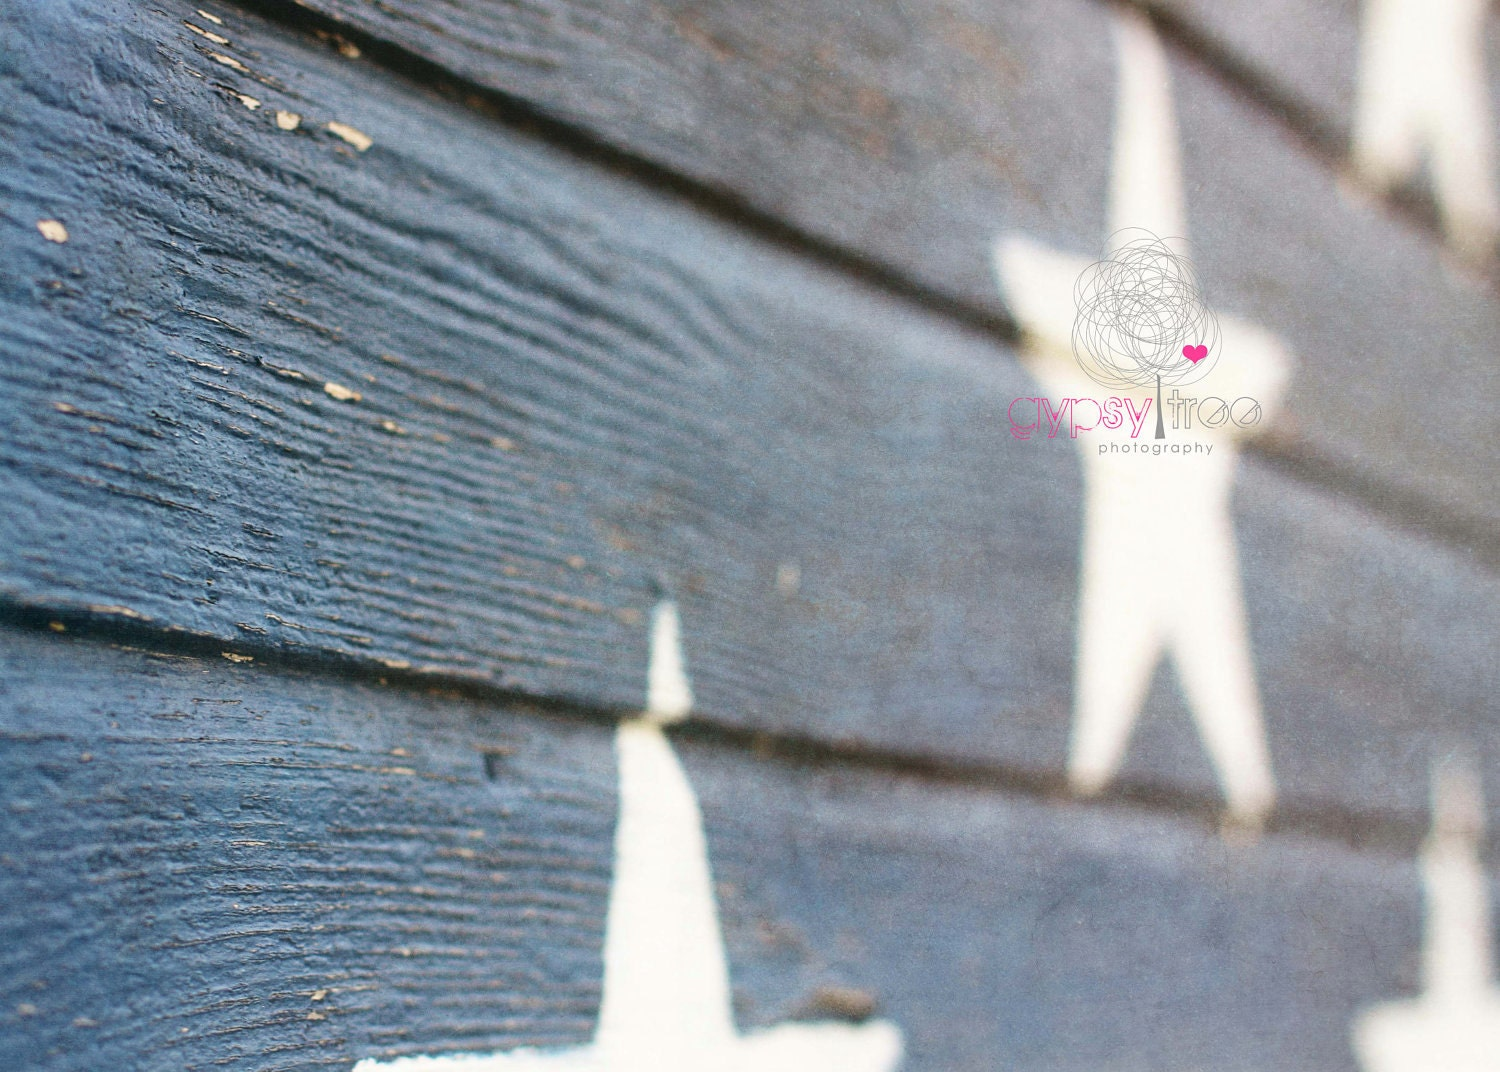 Rustic Photograph - Pride  - 8x10 Photograph Stars Painted on Building